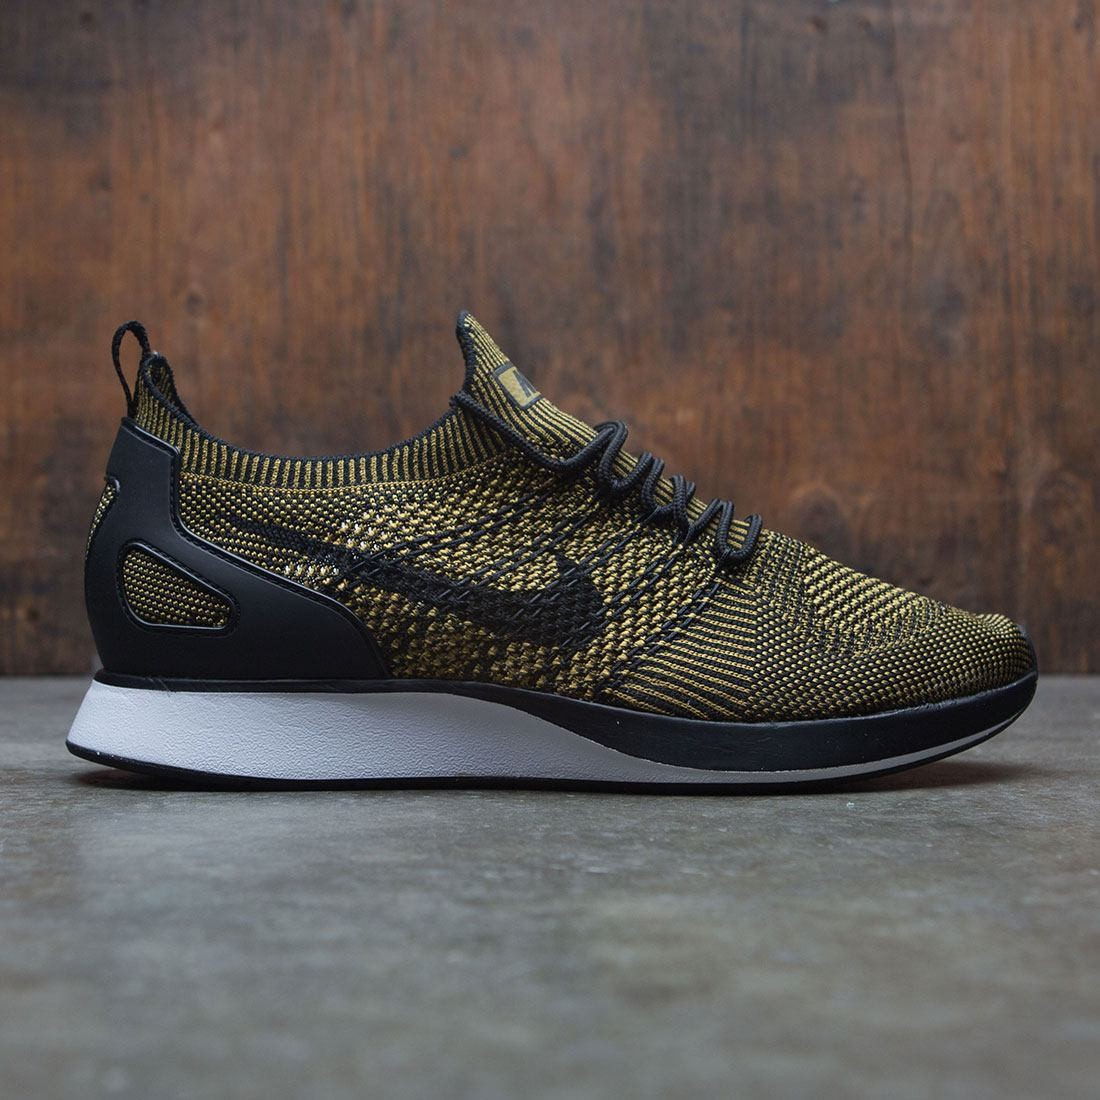 Air Zoom Mariah Flyknit Racer Men's Shoe | FlyKint racer